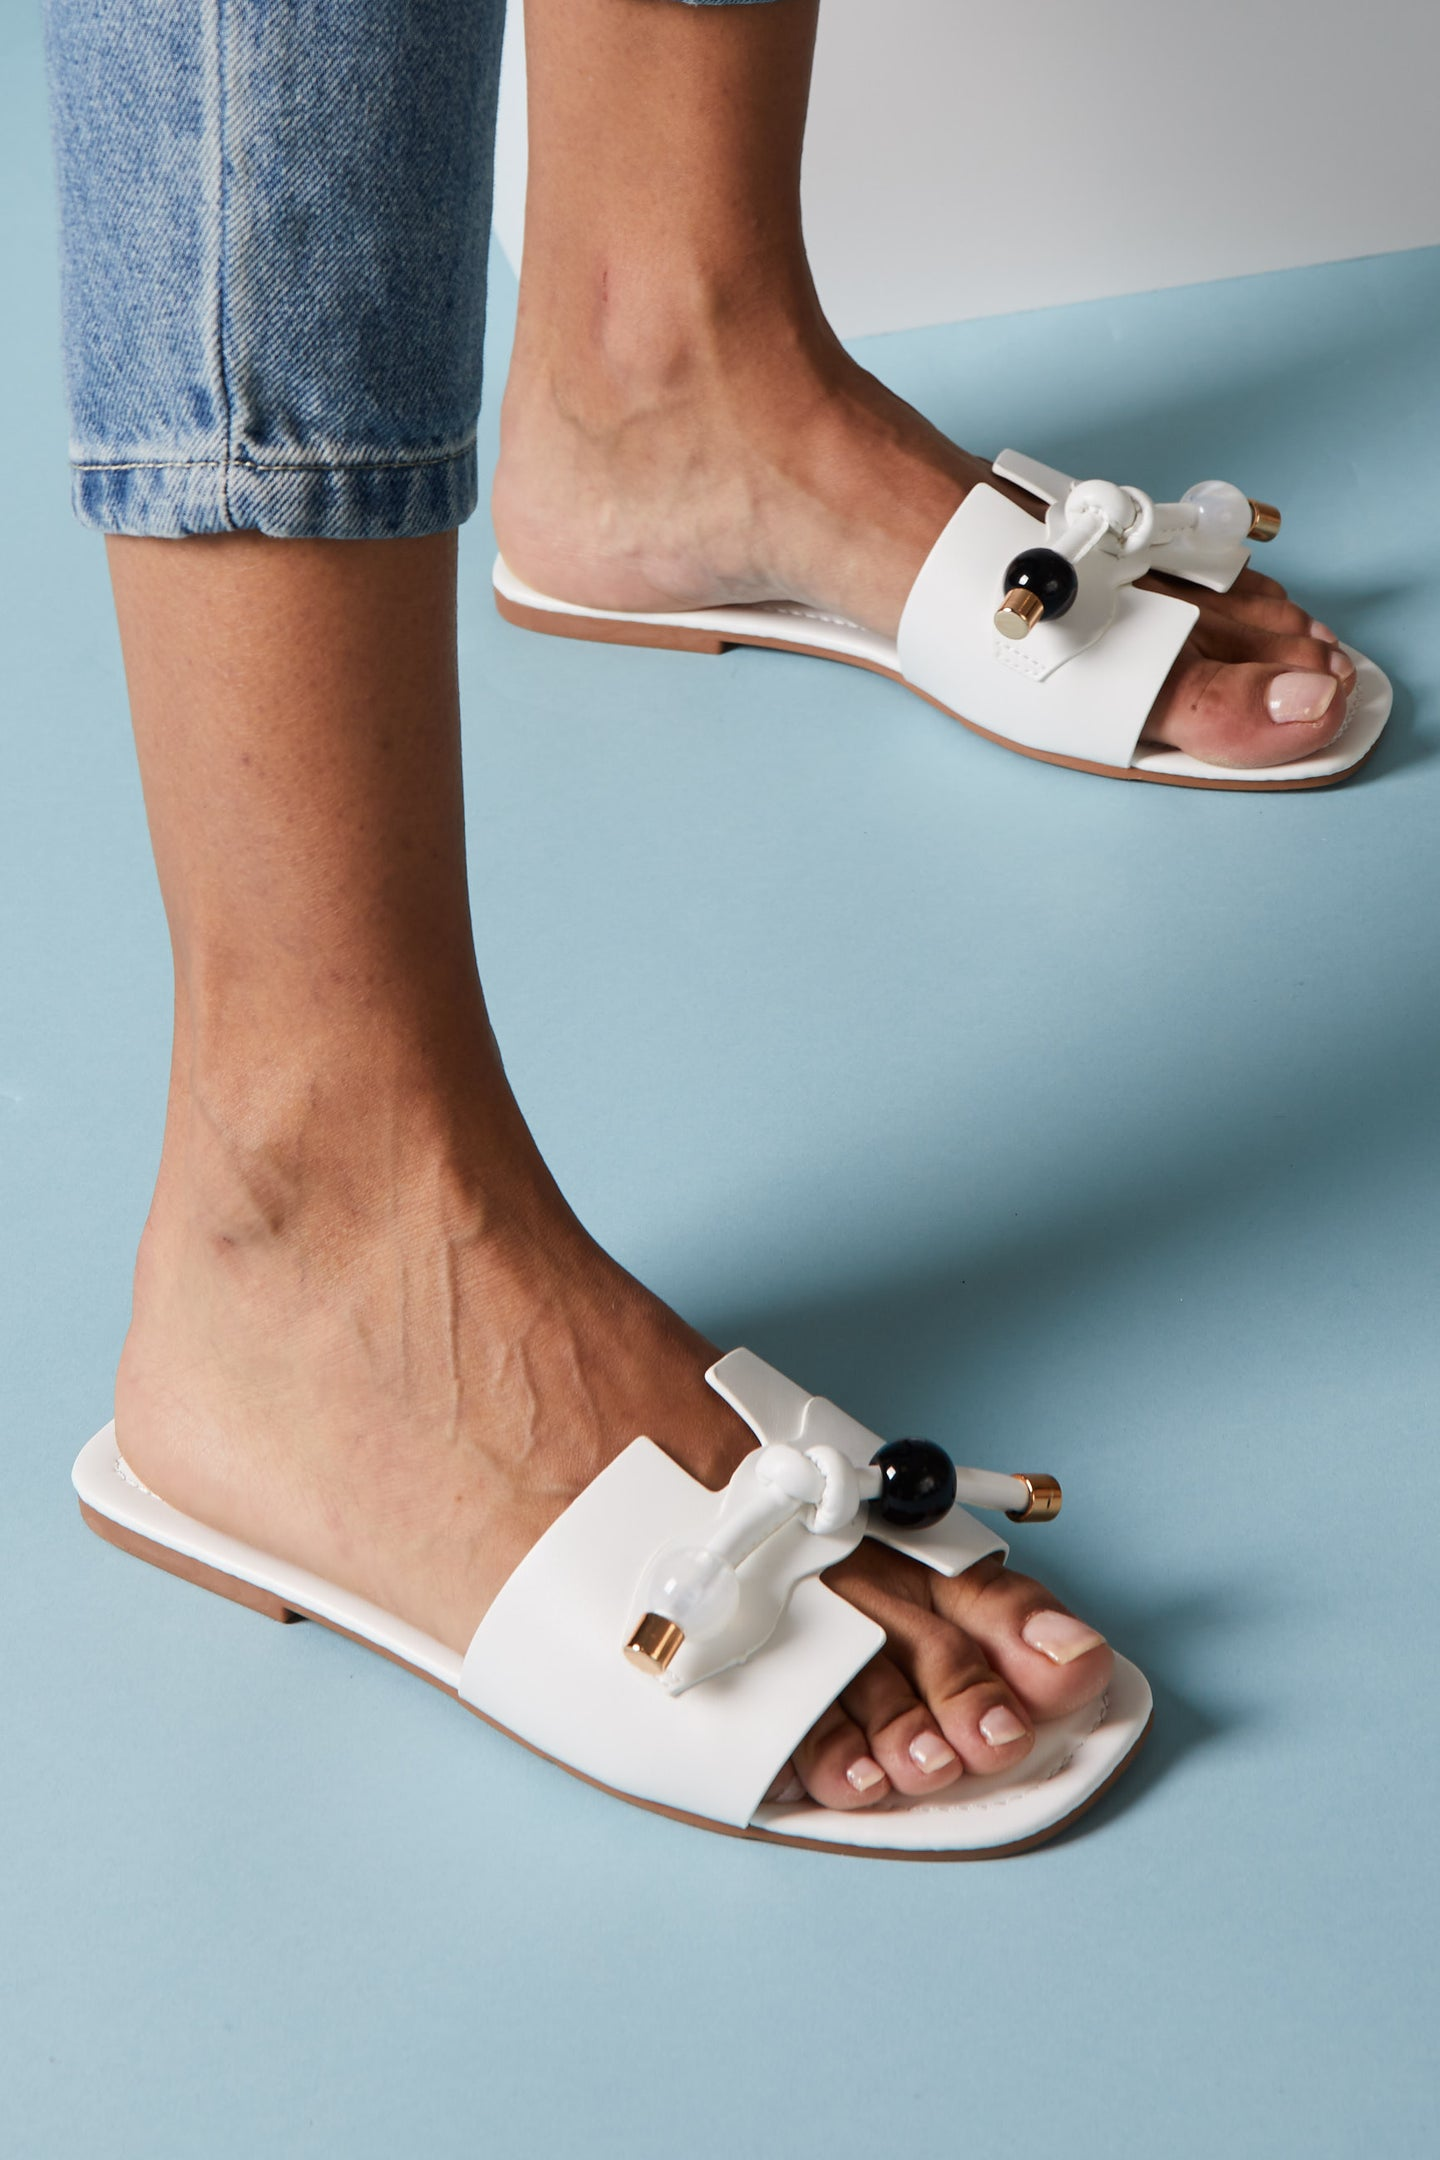 Sandales blanches avec noeud